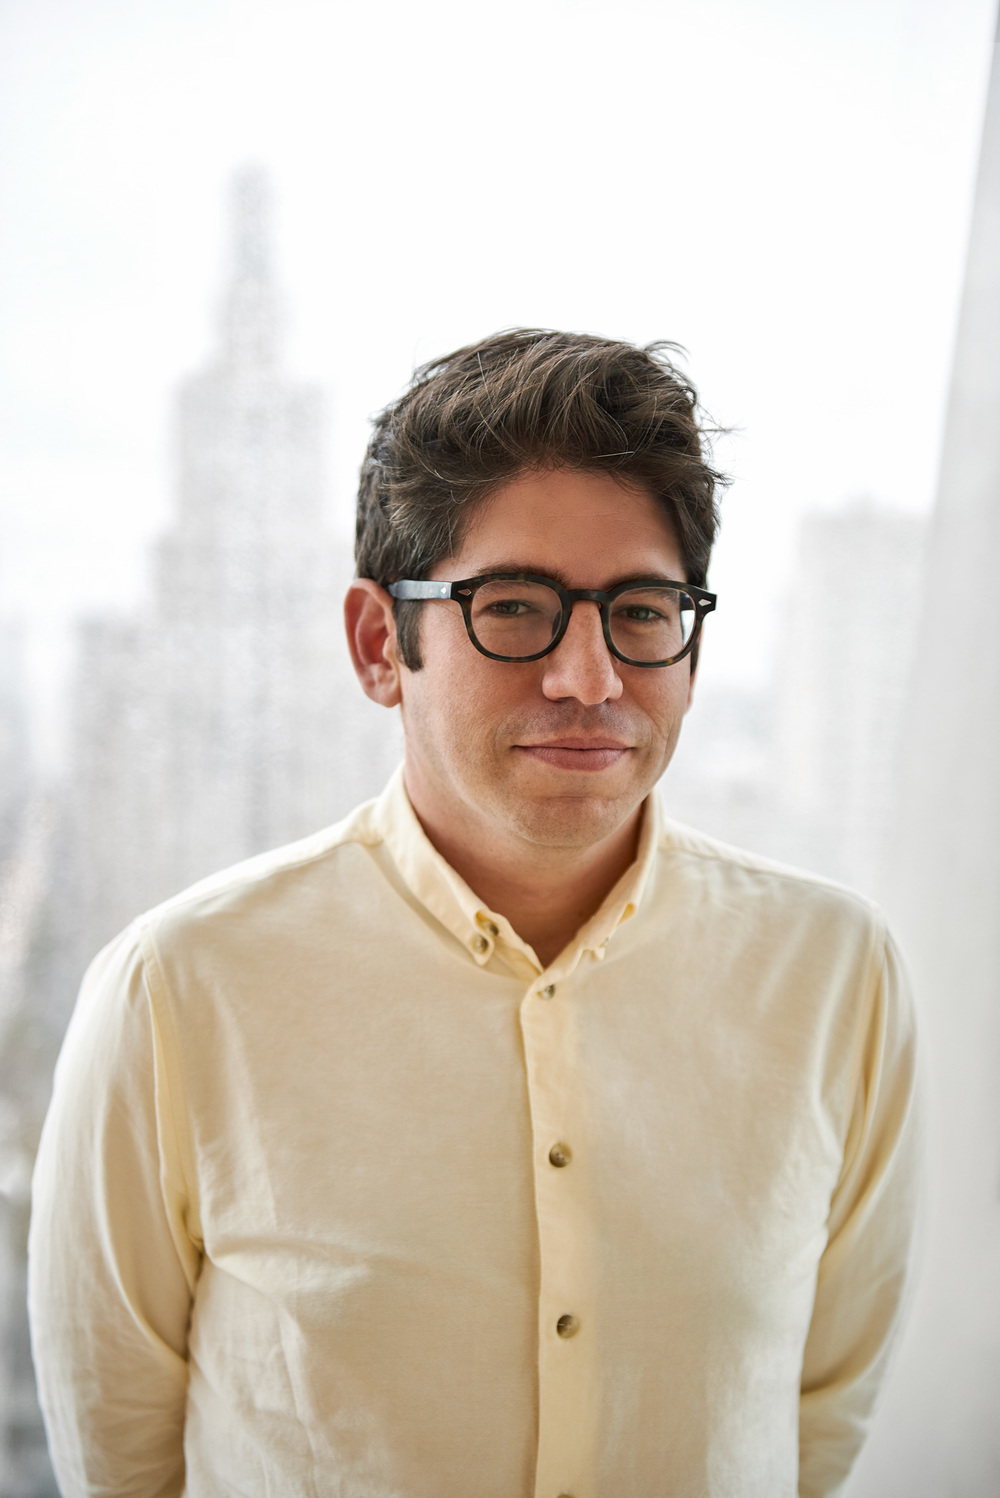 Yancey Strickler, Co-Founder & CEO of Kickstarter.